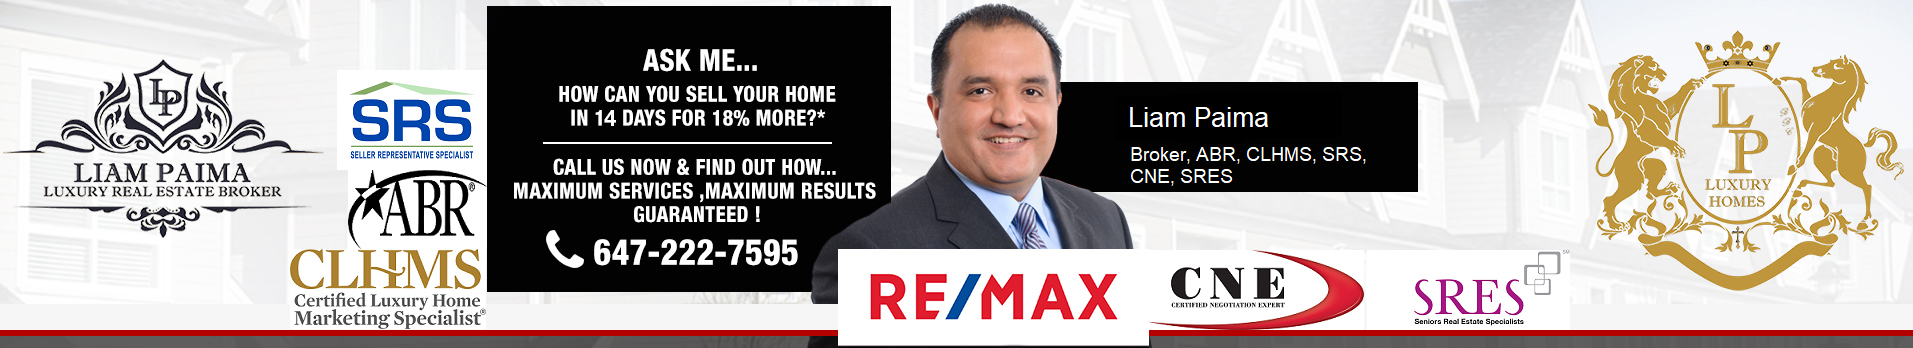 #1 Low Commission Real Estate Agent With Best Low Real Estate Commission Service In Toronto, Vaughan, Kleinburg, Oakville, Richmond Hill, Mississauga, Brampton, Milton, Caledon, Georgetown, Burlington, Orangeville, Markham - Page - 38